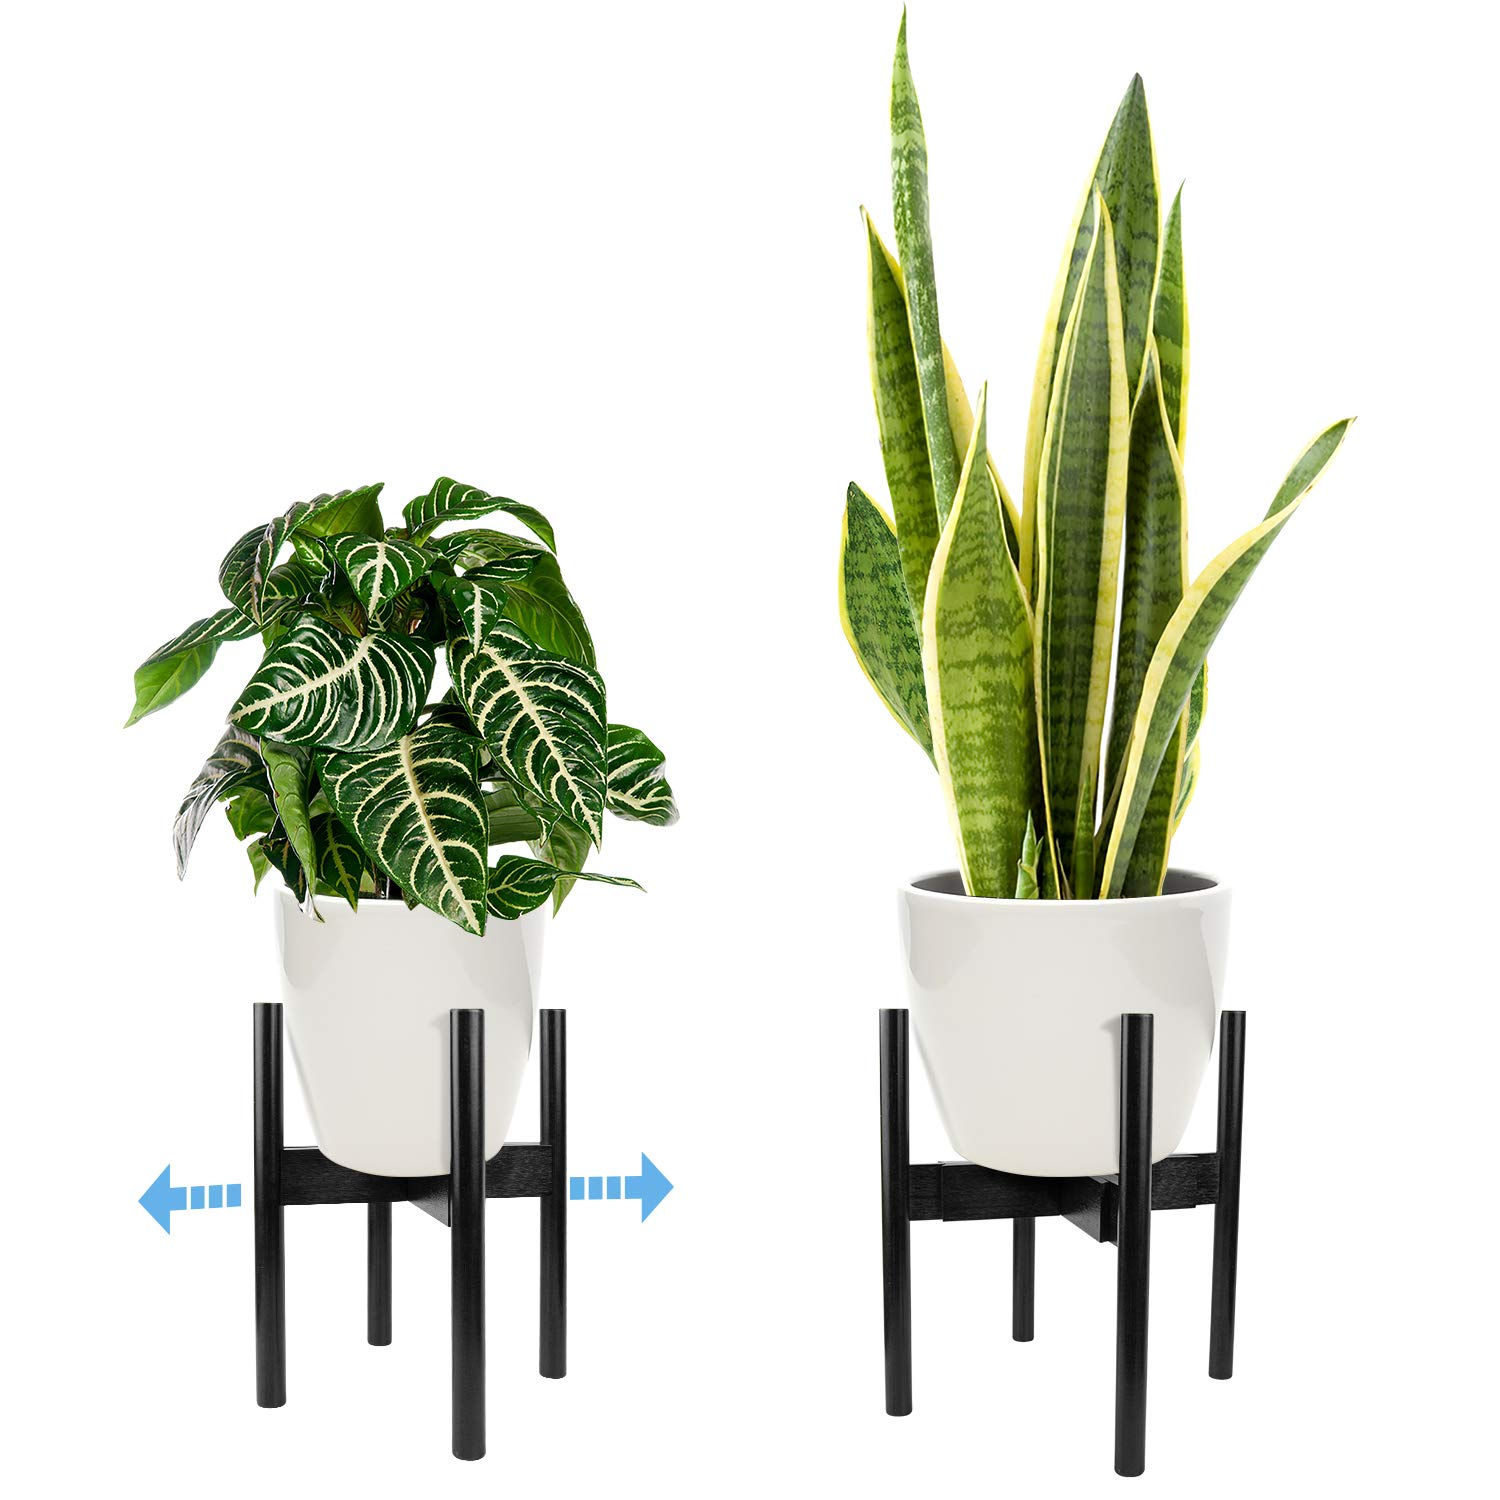 Oak & Boo Adjustable Plant Stand Mid Century Modern for Indoor Outdoor Planters 100% Bamboo Wood - Adjustable Width 9'' to 12'' Fits Tall and Large Pots (Planter Pot Not Included)